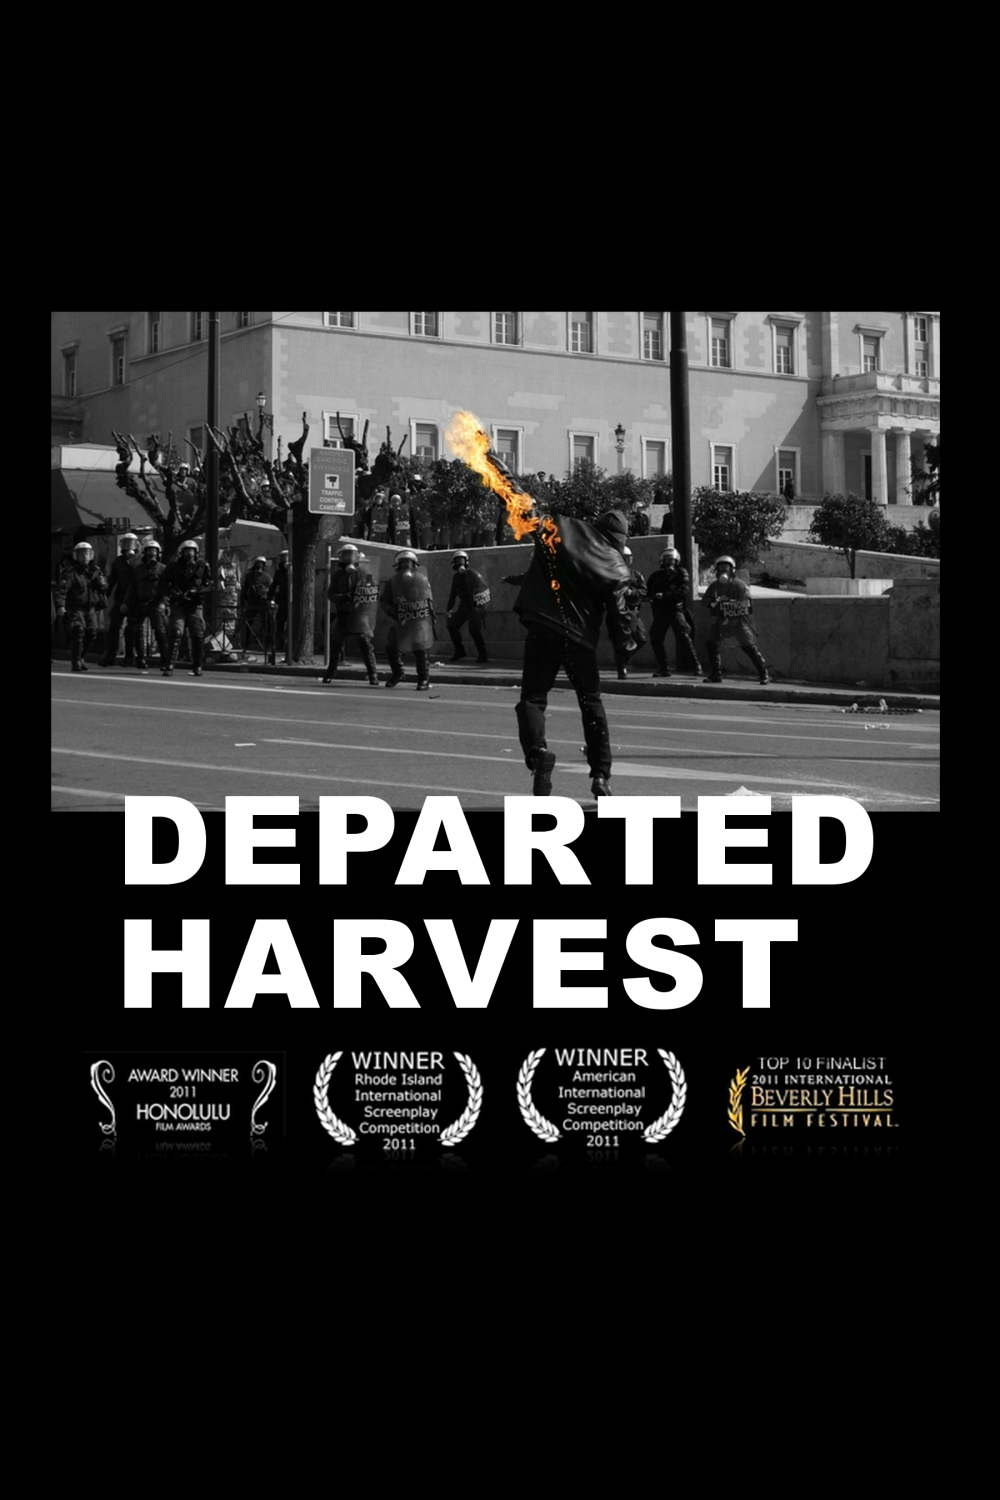 DEPARTED HARVEST POSTER2